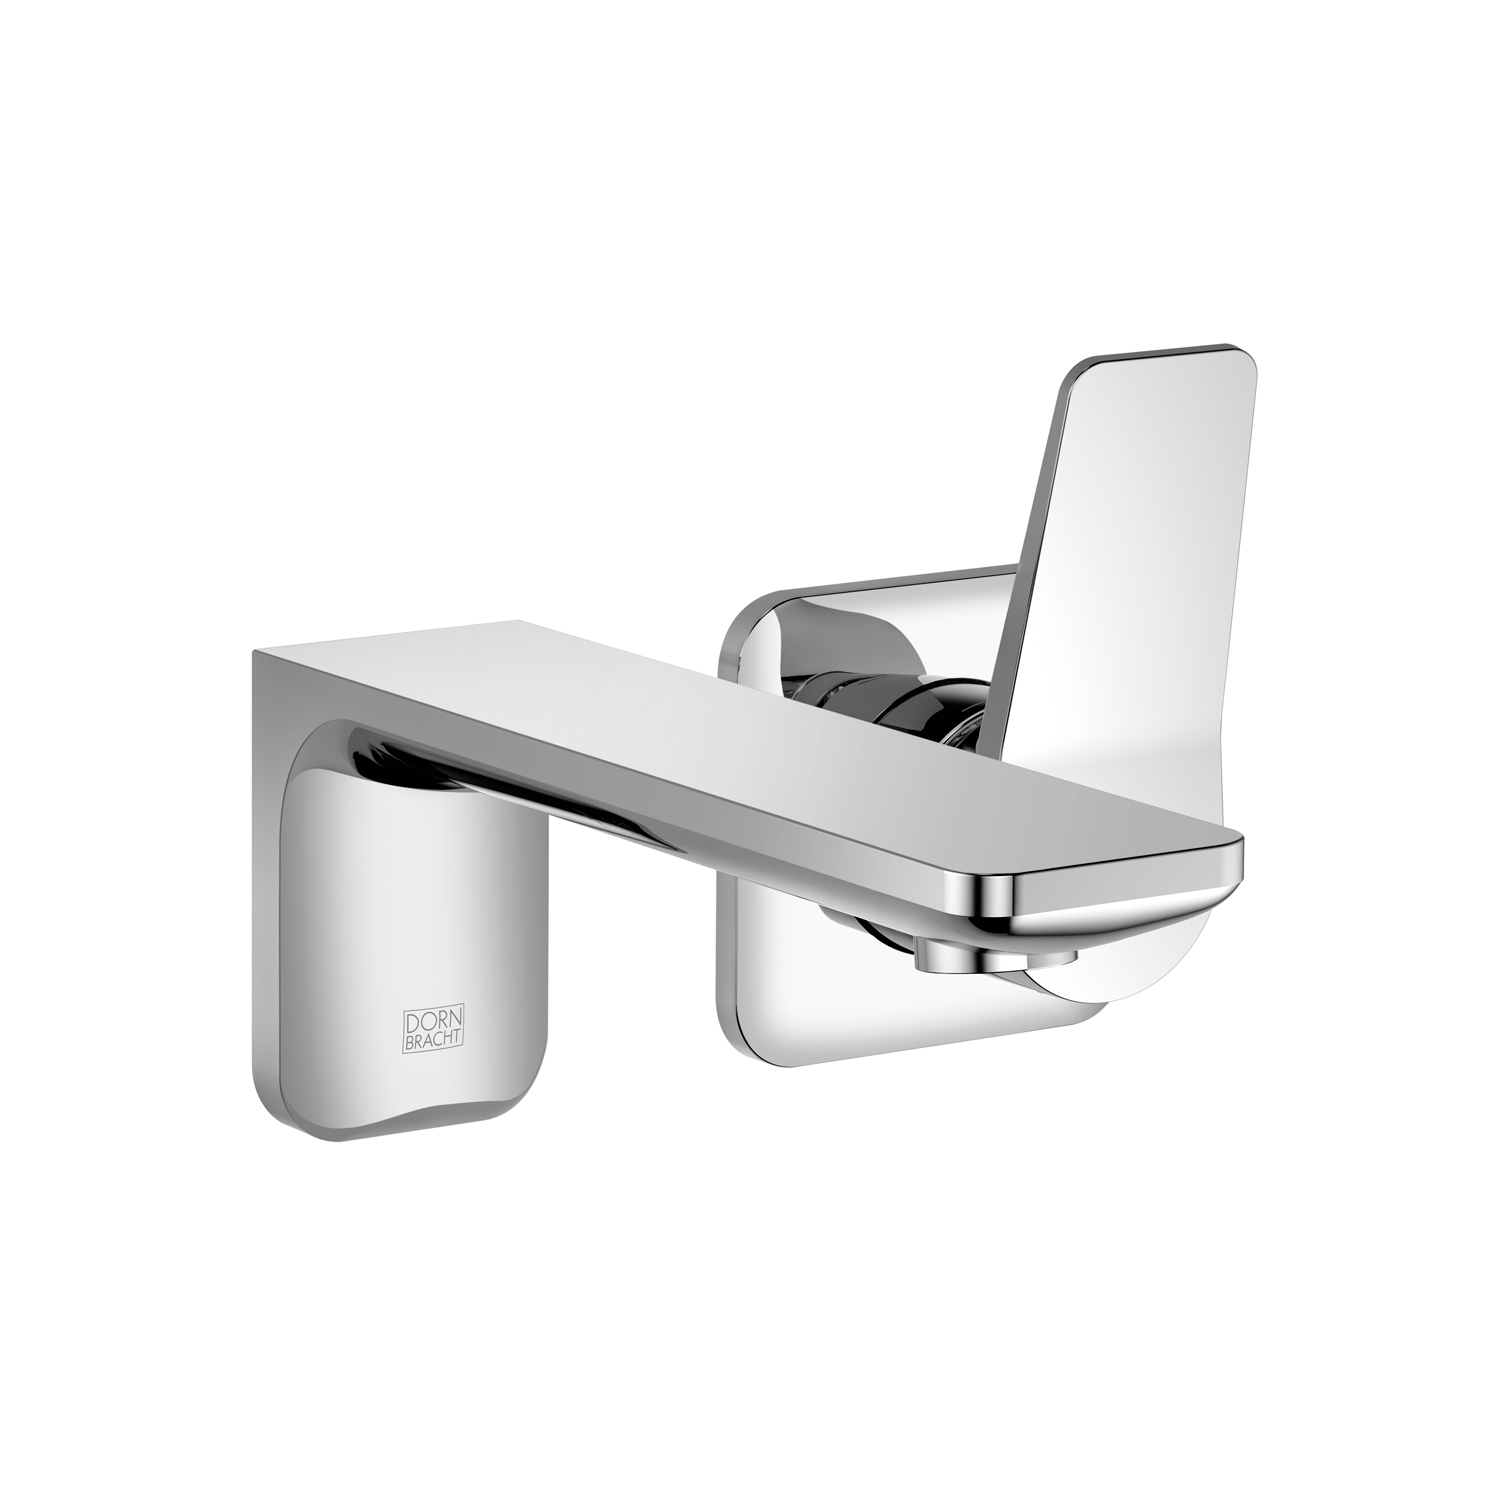 Dornbracht 36810845-00 Lisse Wall-Mounted Single-Lever Mixer without Drain - Polished Chrome